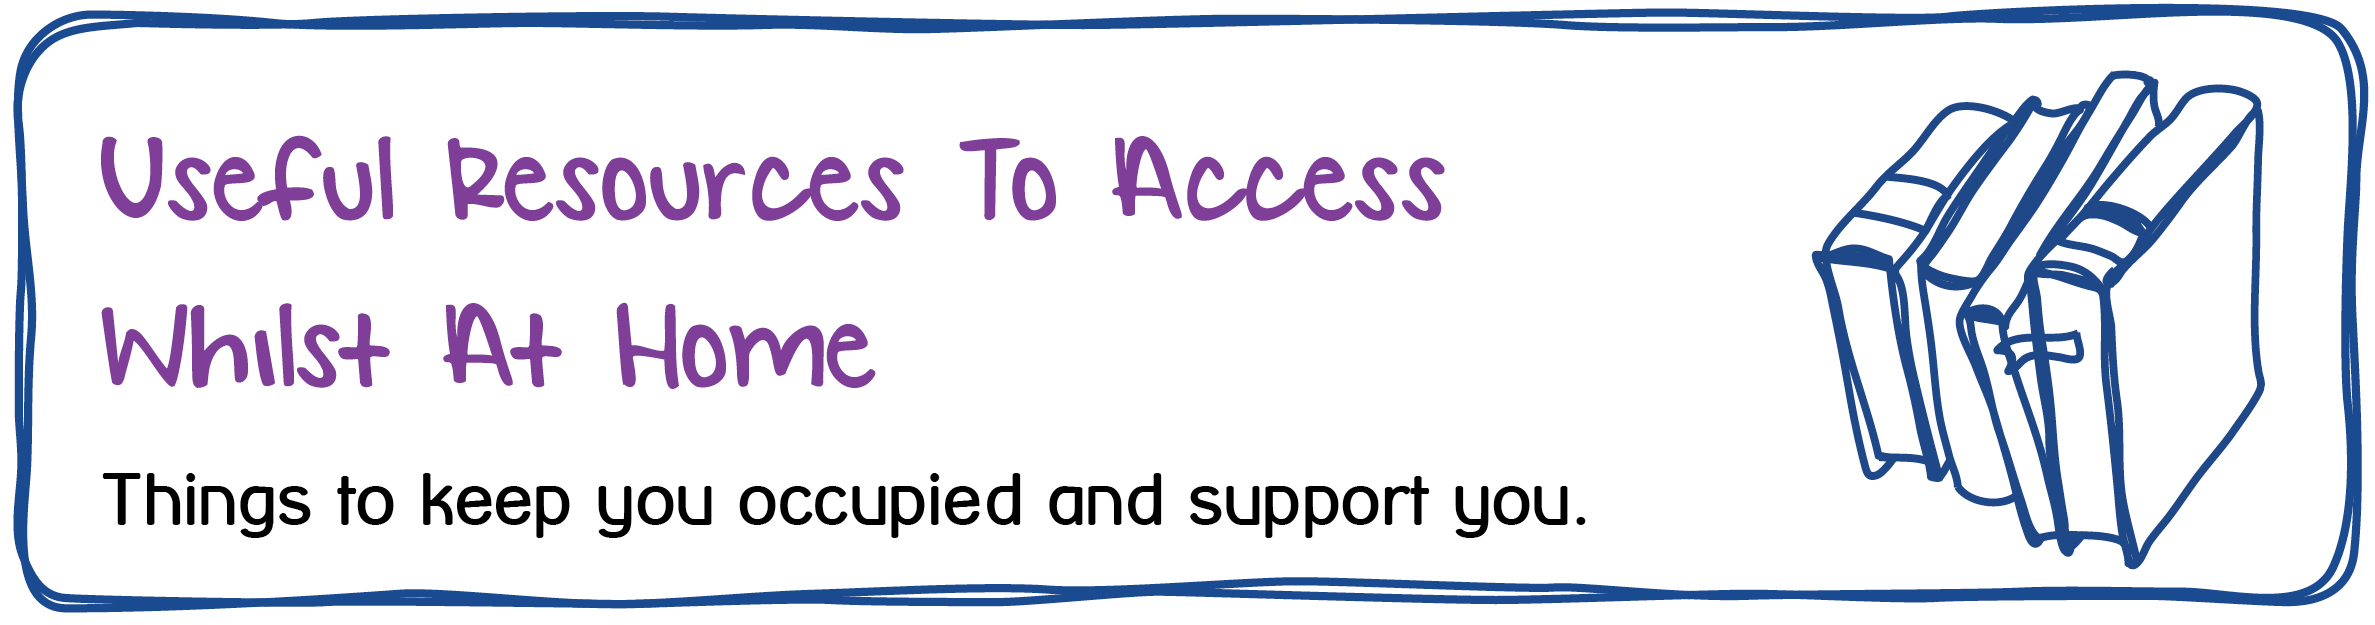 Useful Resources To Access Whilst At Home. Things to keep you occupied and support you.